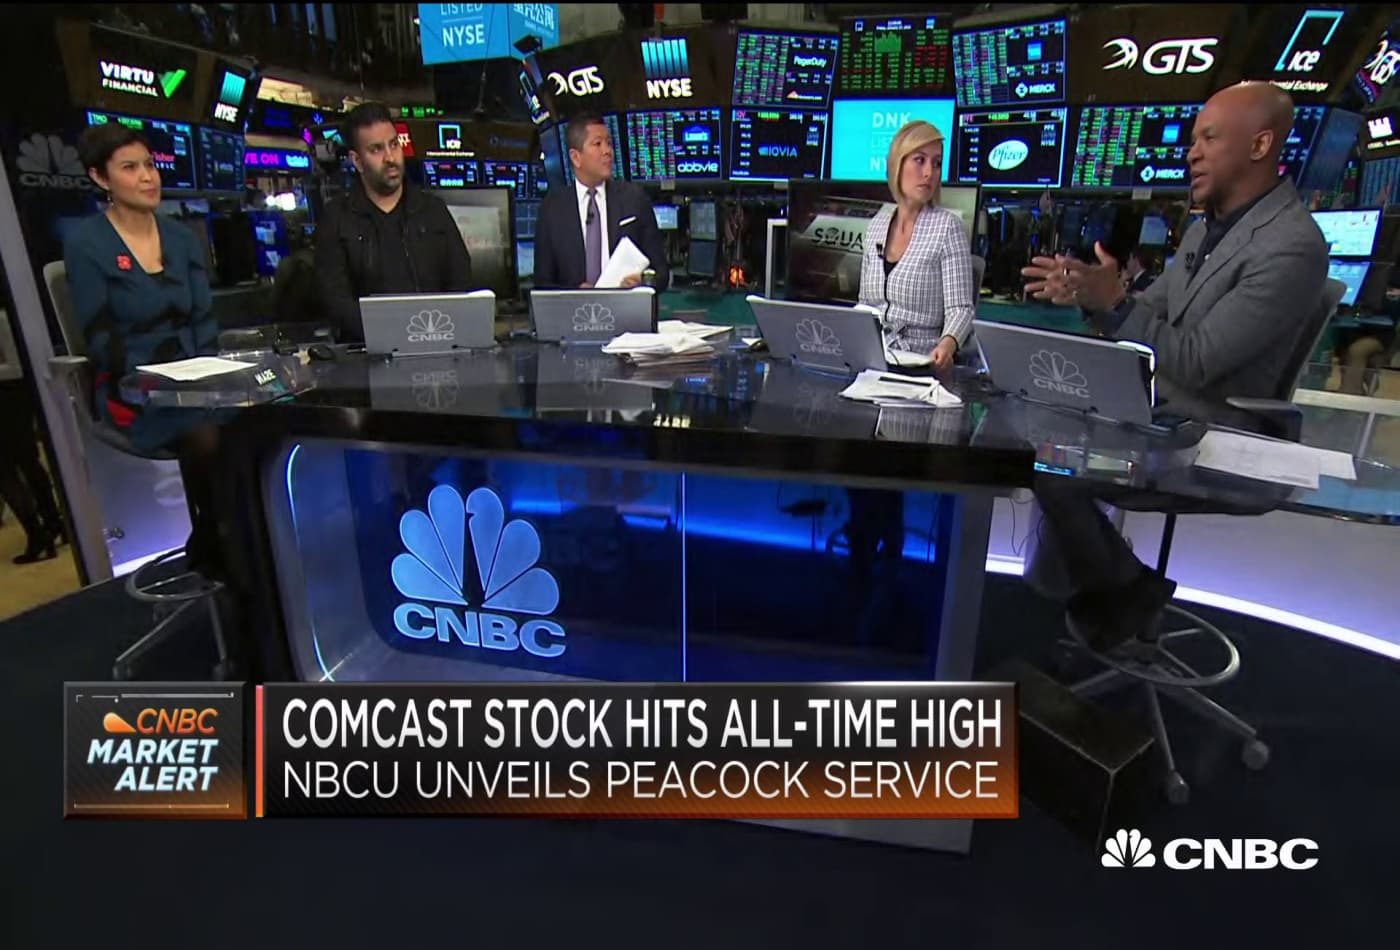 Peacock needs to be a big hit for Comcast, says Fast Company's Mehta